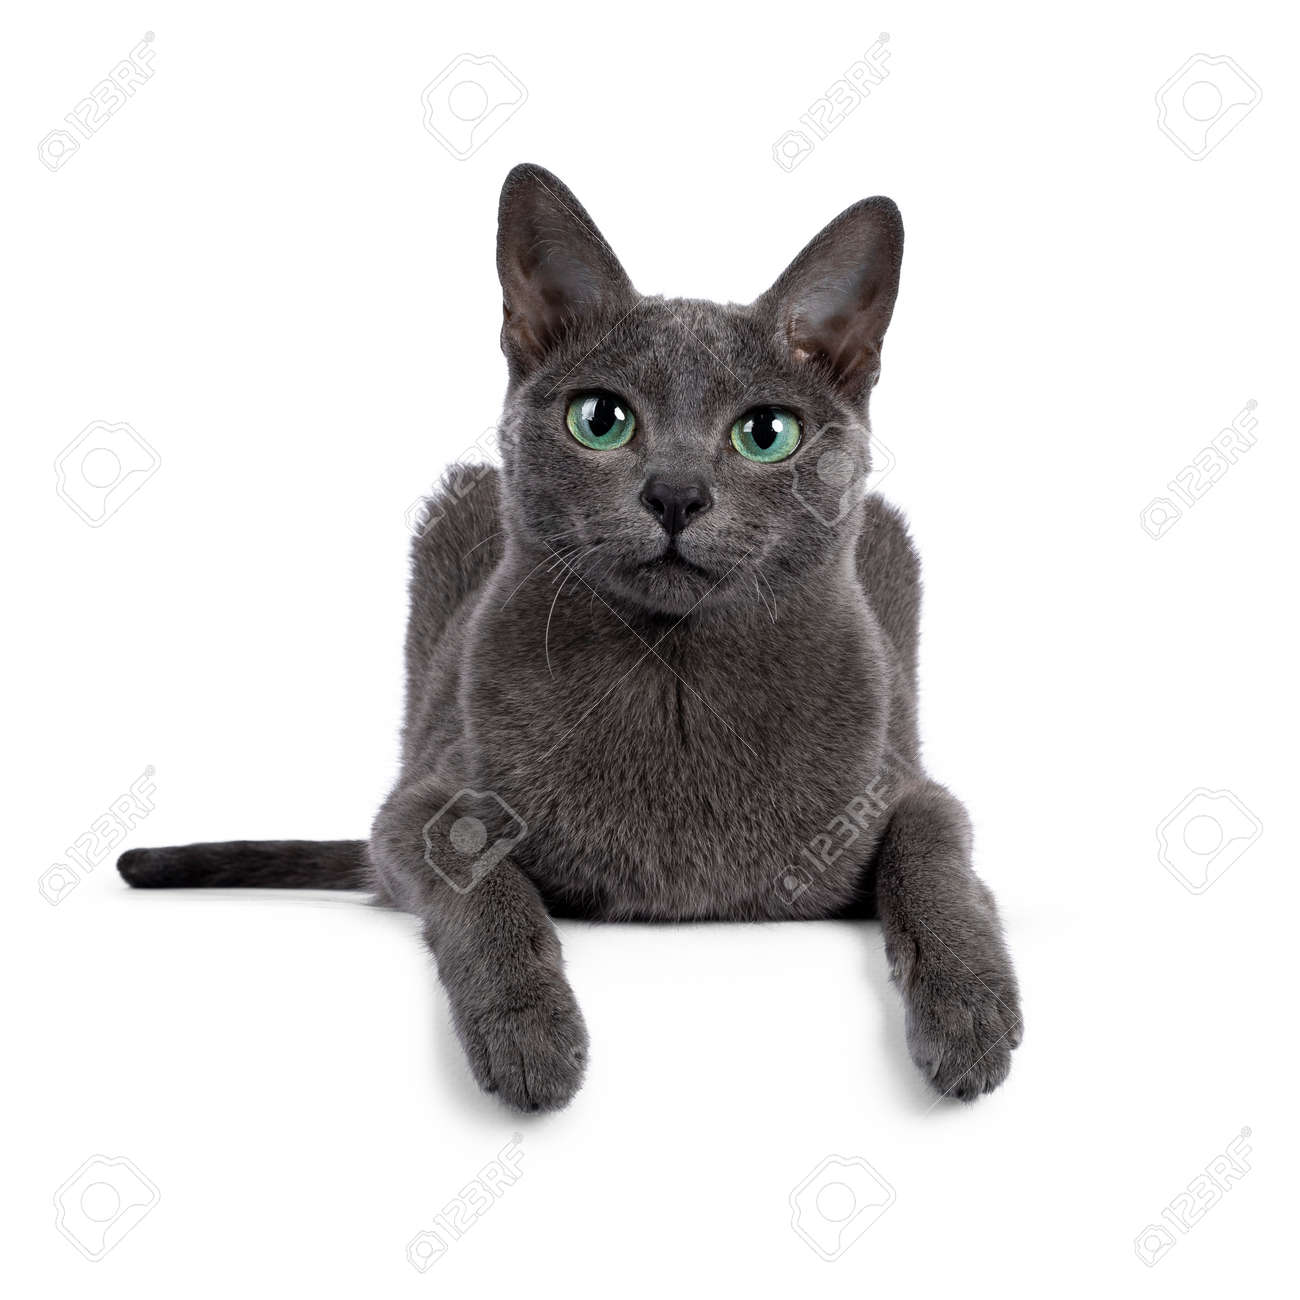 Young silver tipped Korat cat, laying down facing front with two paws over edge. Looking towards camera with bright green eyes and attitude. Isolated on a white background. - 173188997